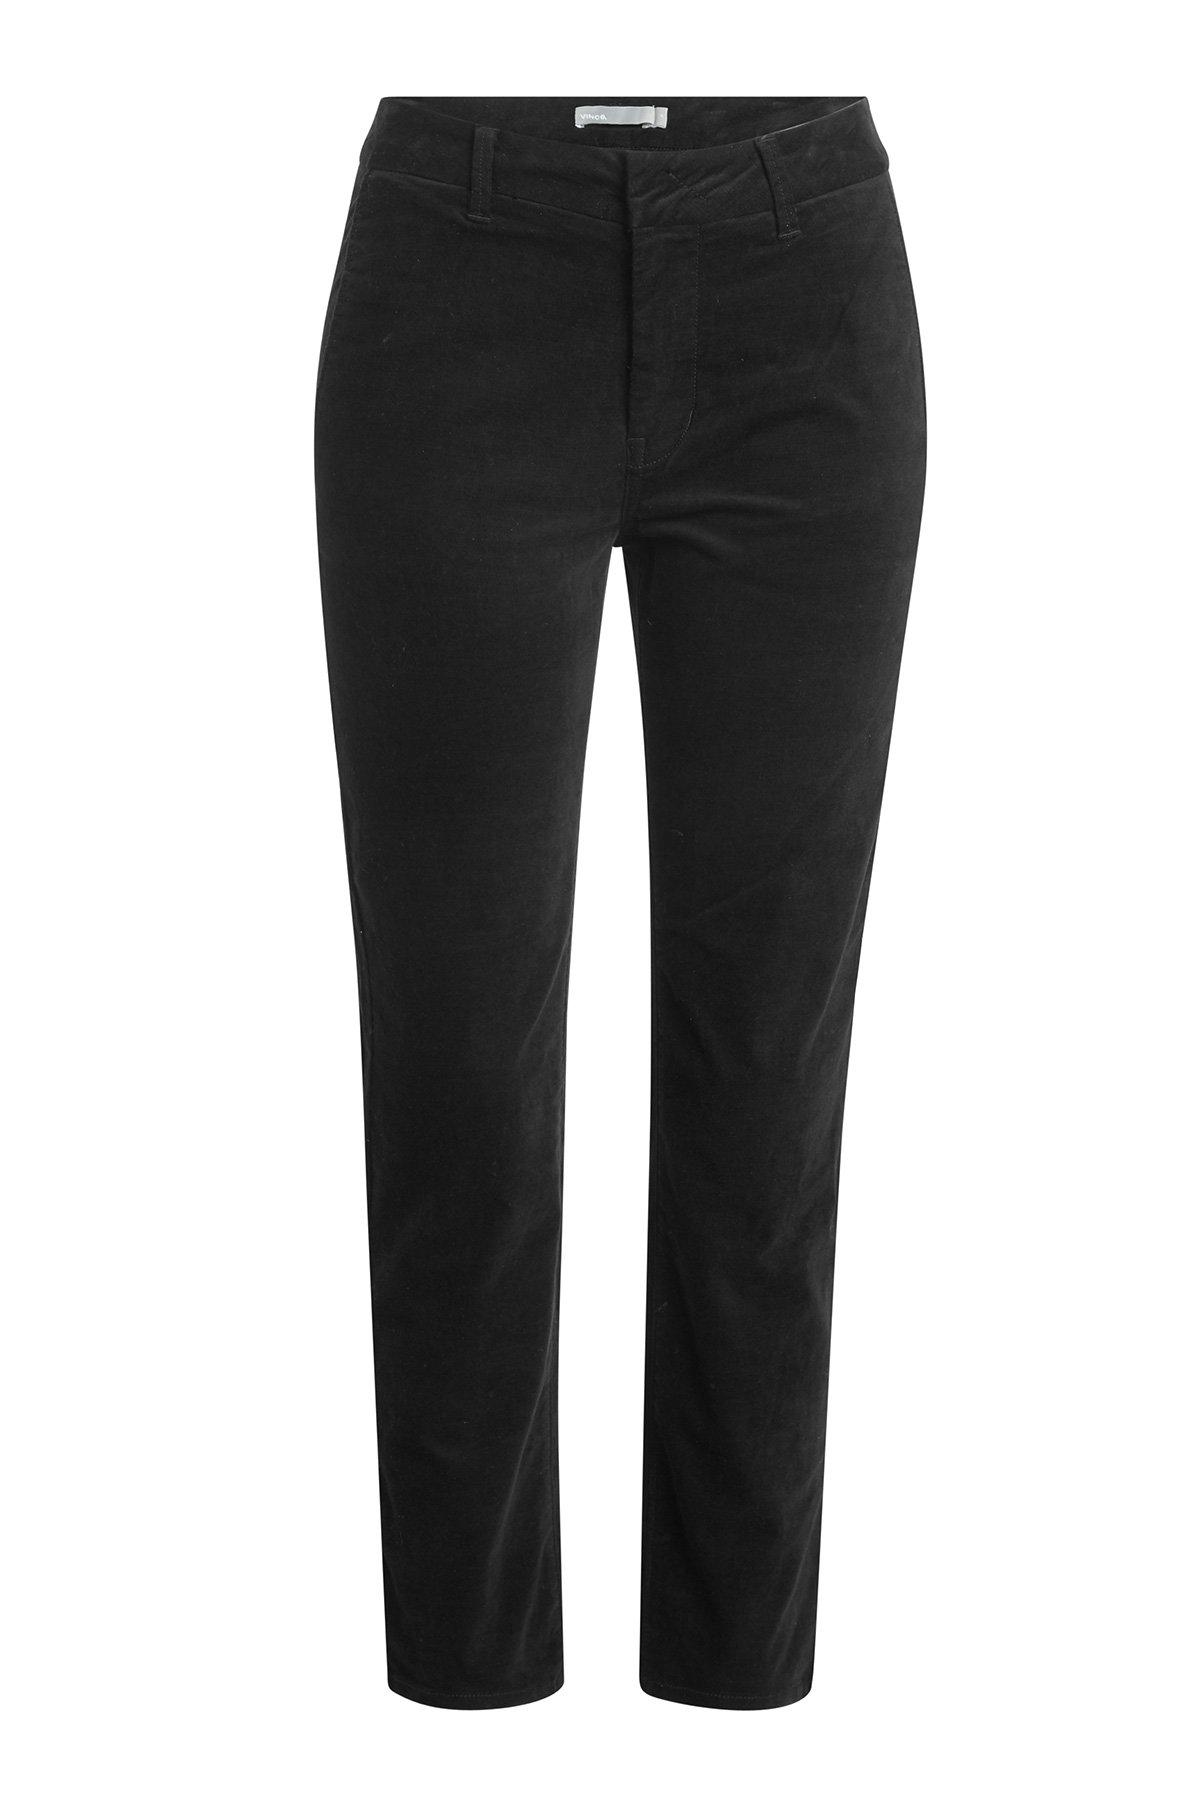 Vince Corduroy Pants In Black